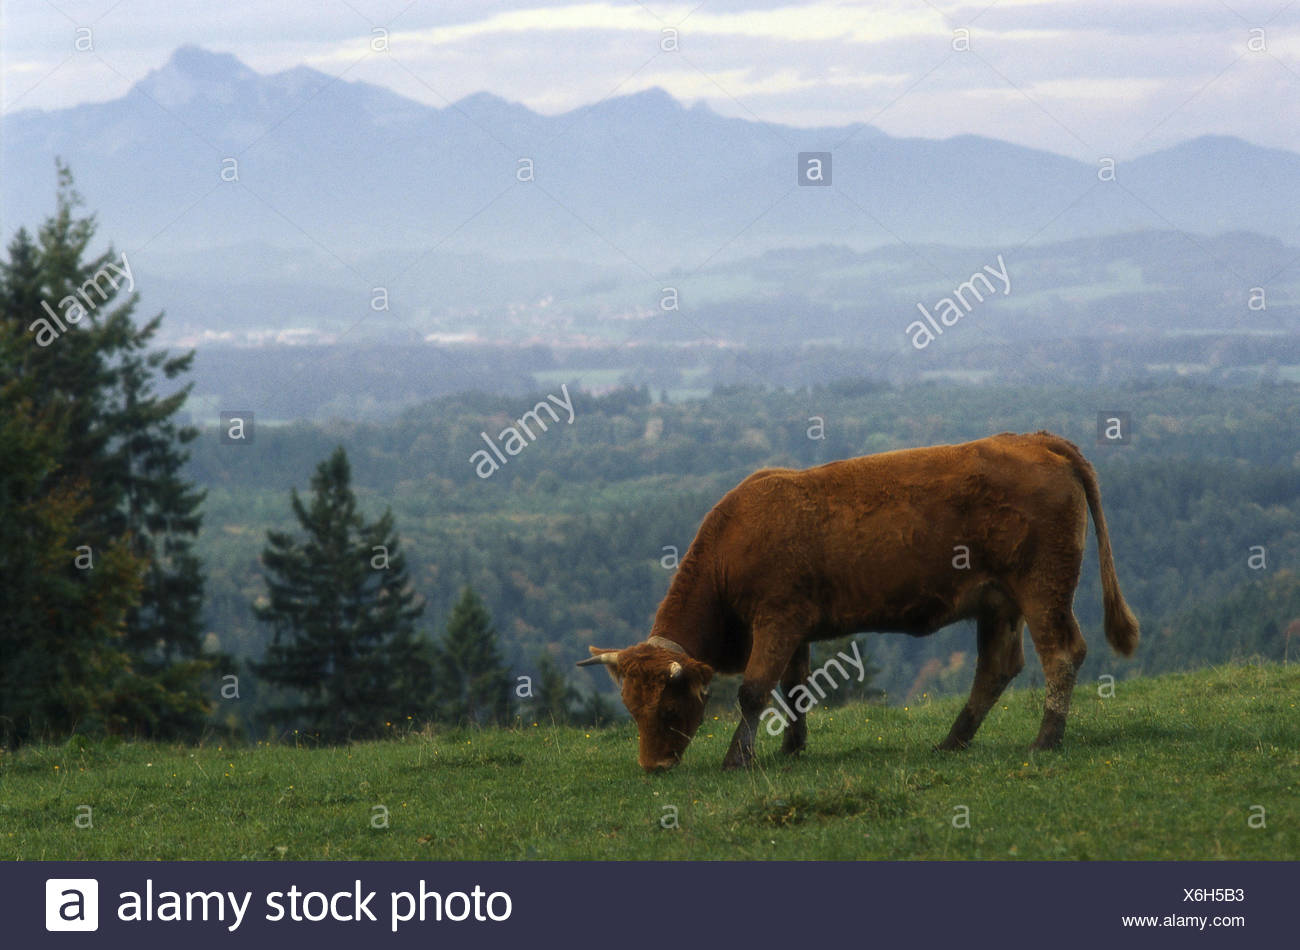 Mountain meadow, cow, eat,    Alm, meadow, animal, mammal, usefulness animal, cow, cattle, animal husbandry appropriate to the species, livestock farming, cattle-breeding, agriculture, summer pasture, summer, - Stock Image